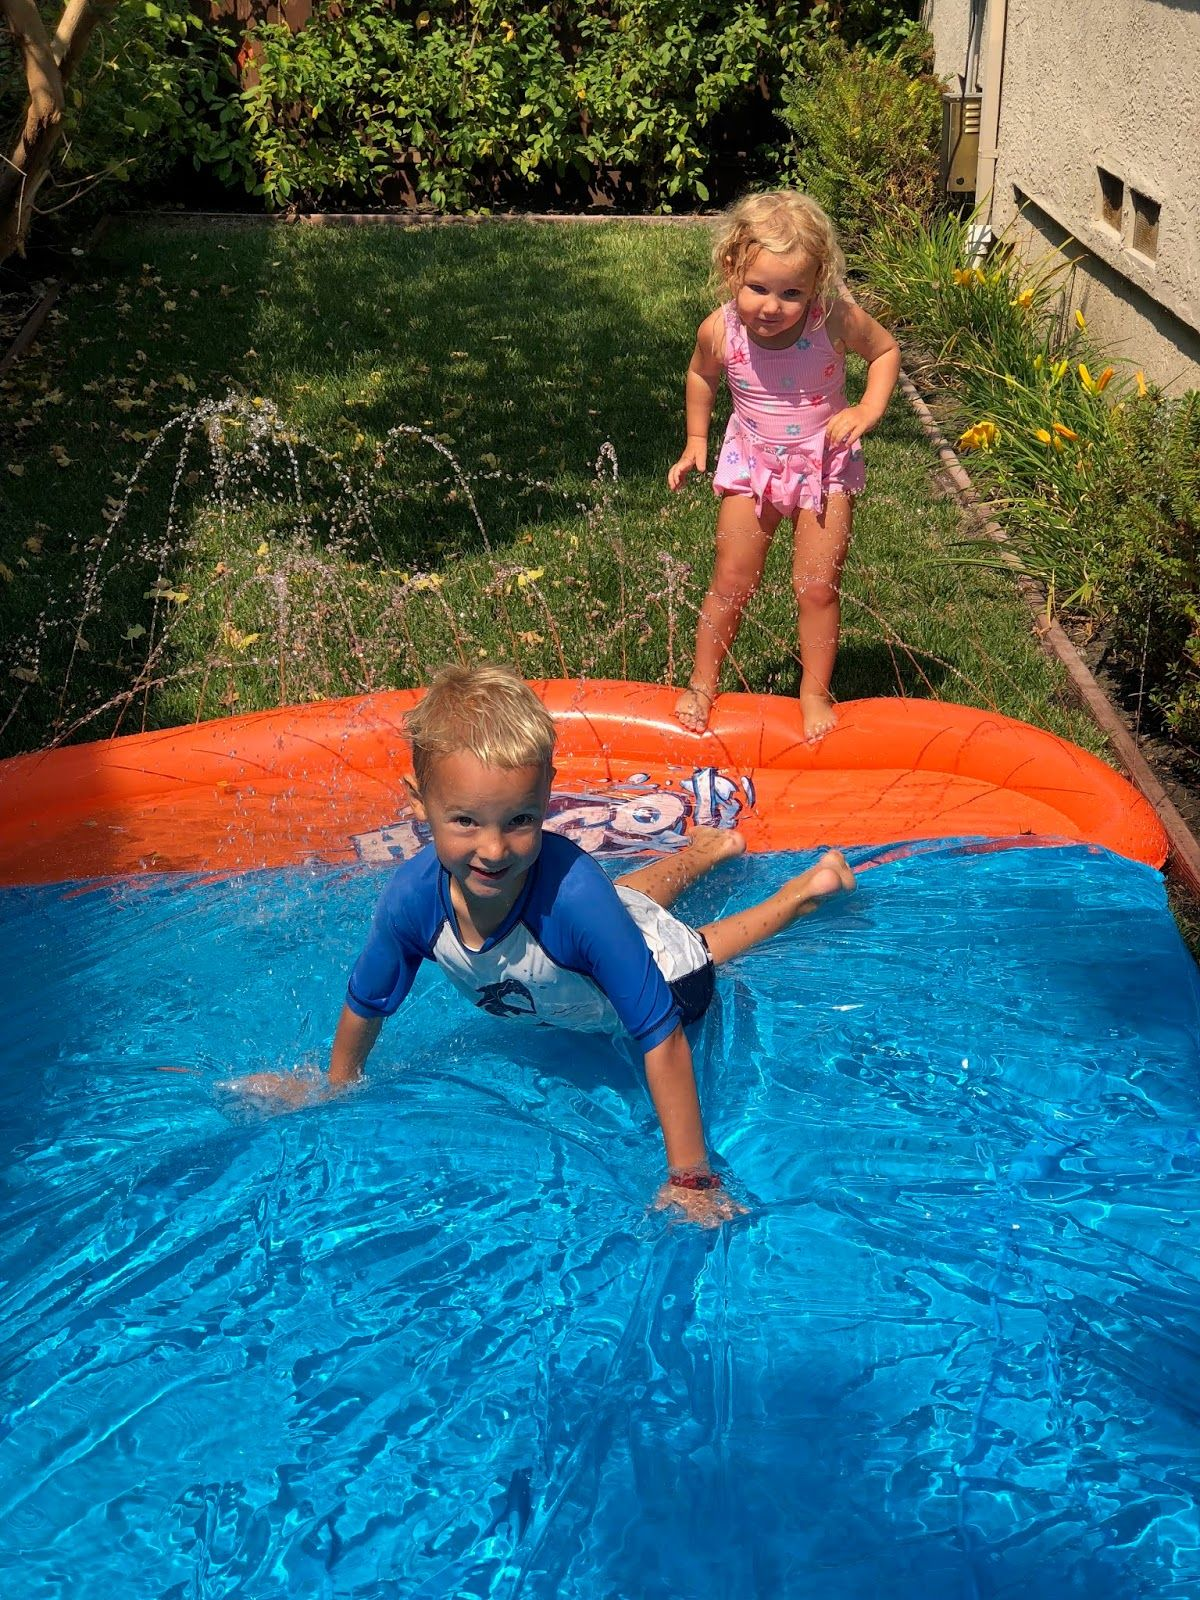 in a turfed garden a boy and a girl in swimwear are playing on a slip and slide